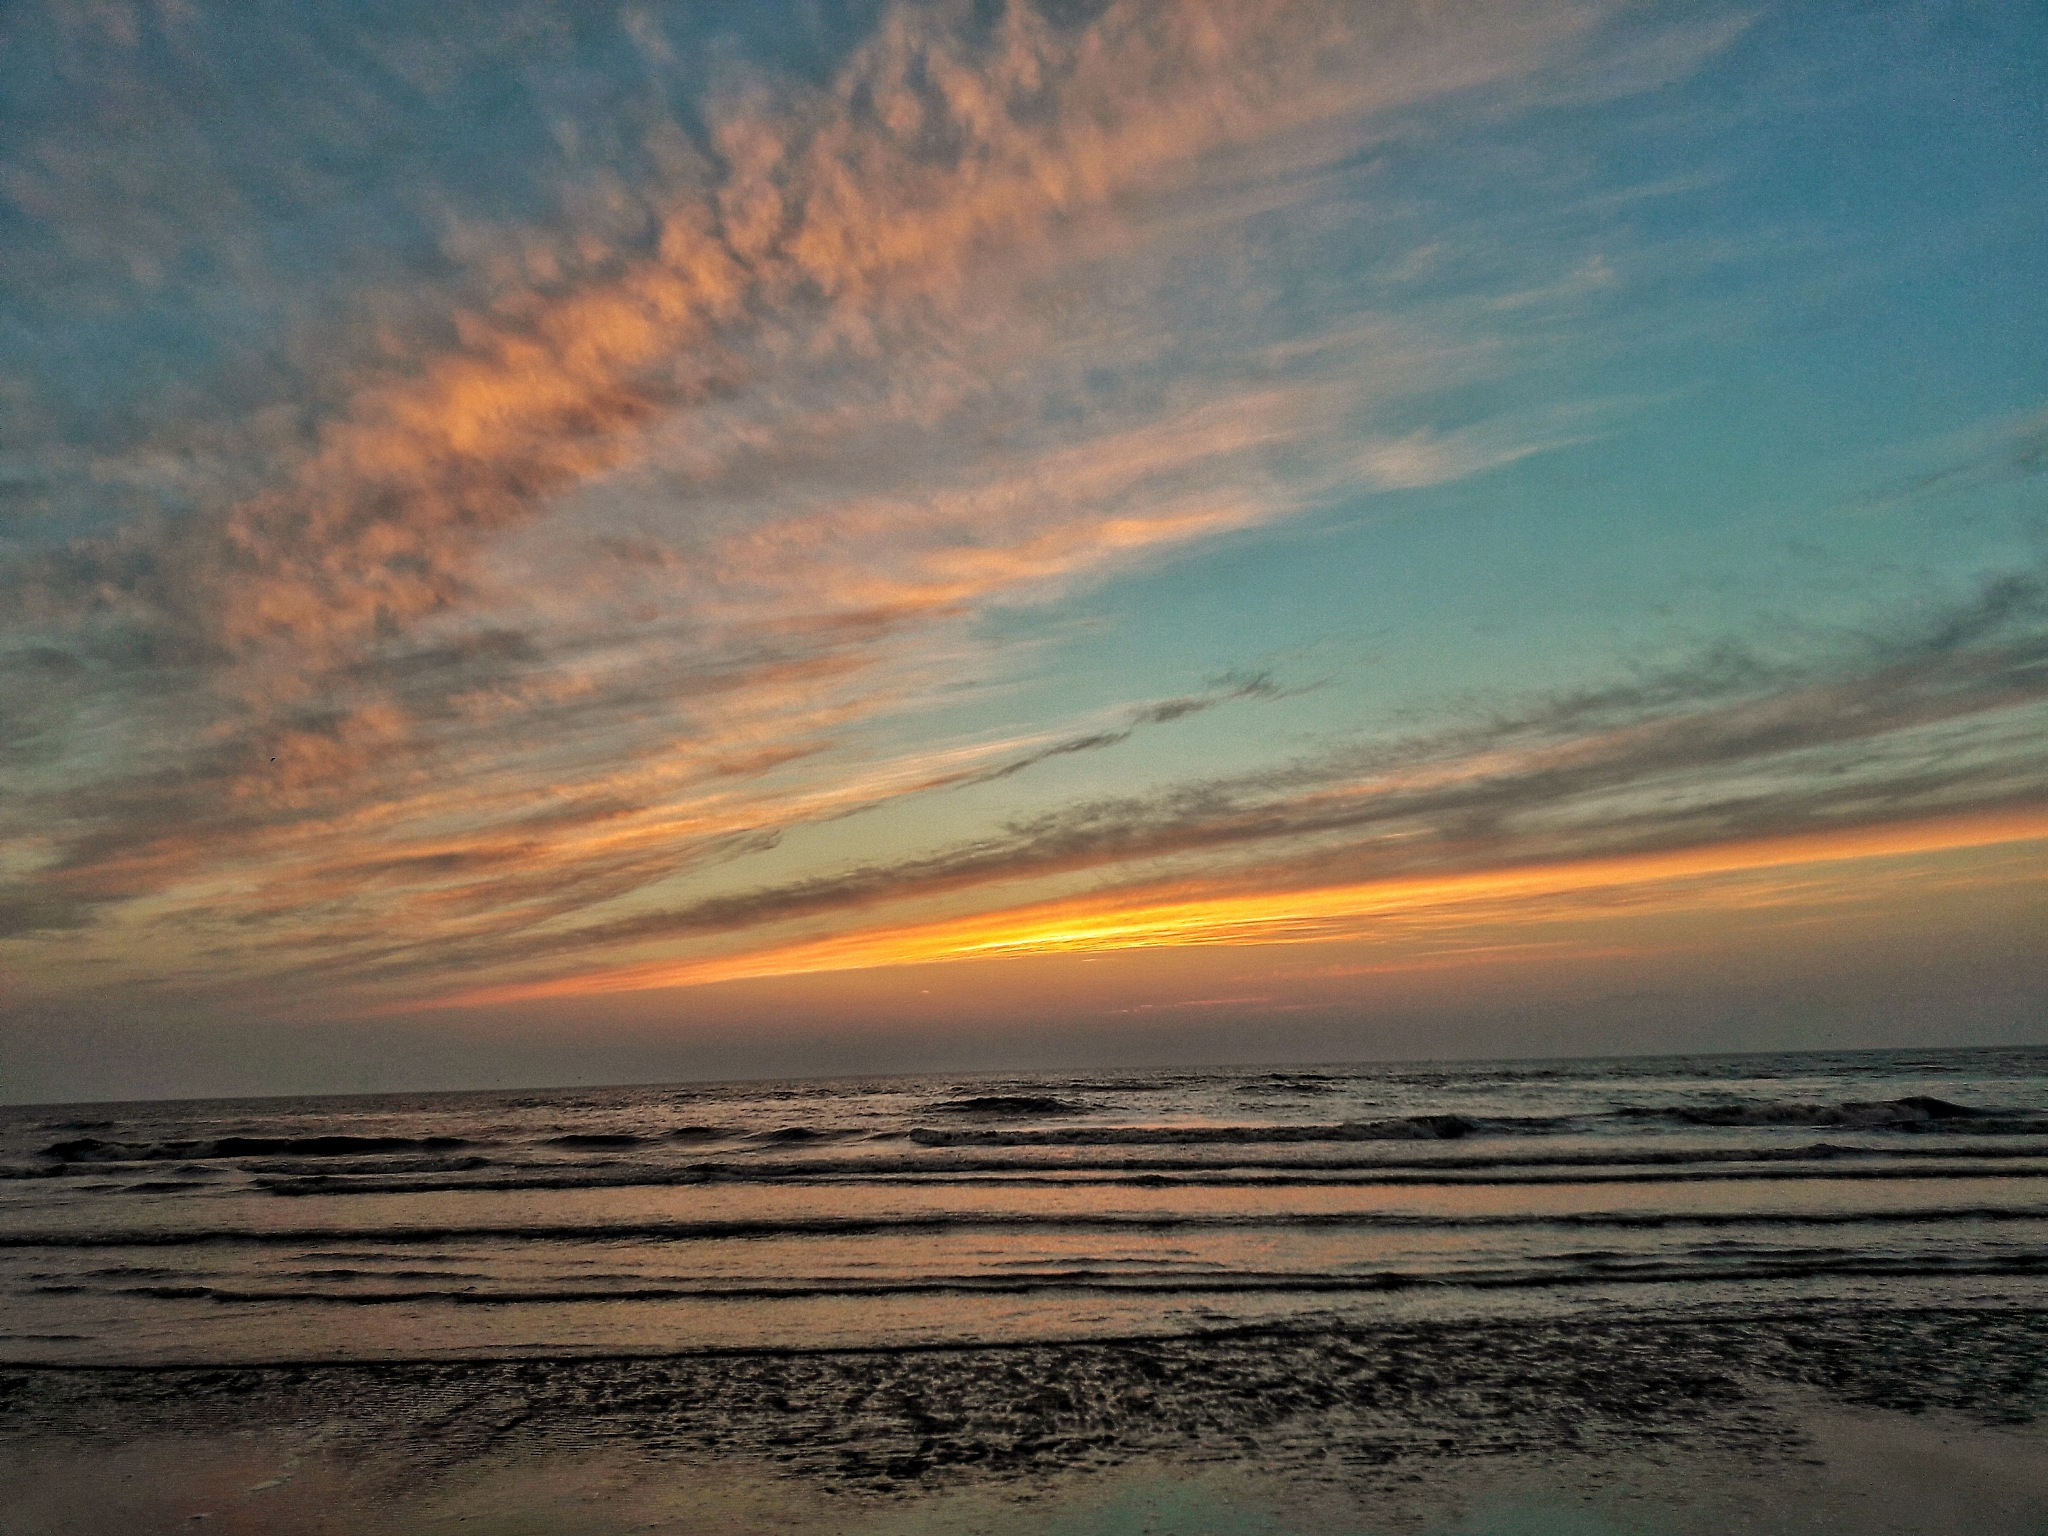 Tonight's sunset by Hero Tammes Buirs